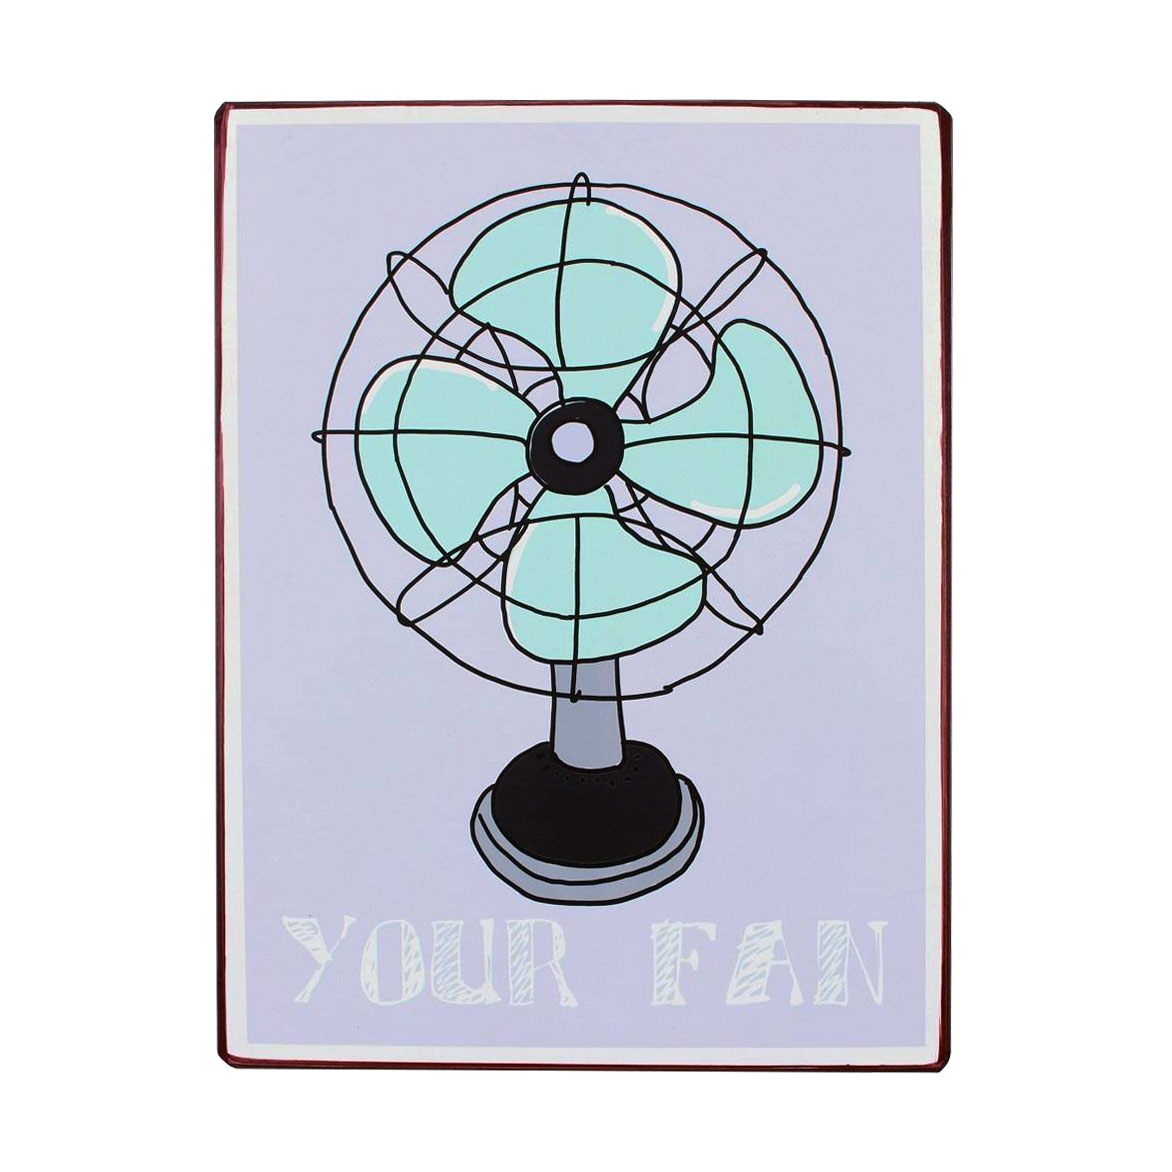 em6249-your-fan-rustiek-tekst-bord-cadeau-kado-online-metaal-deco-decoratie